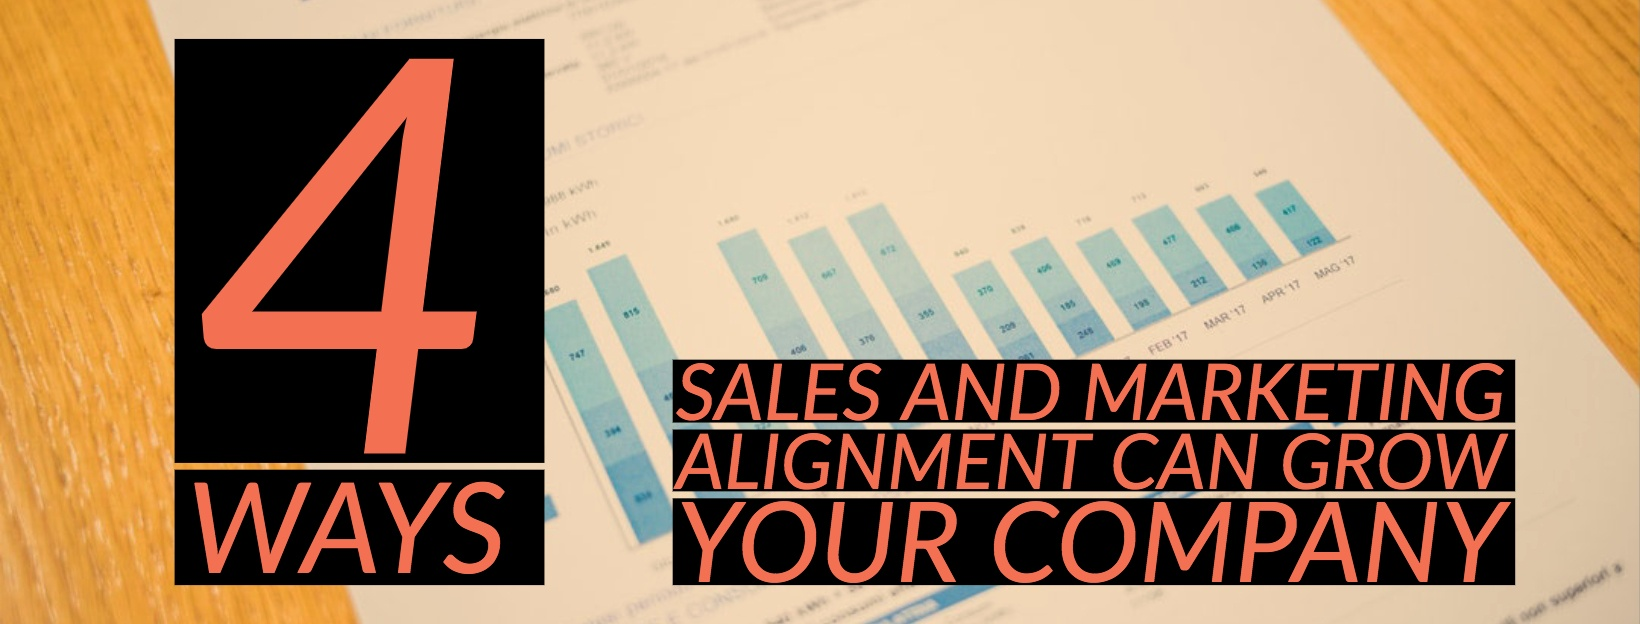 sales and marketing alignment (7)